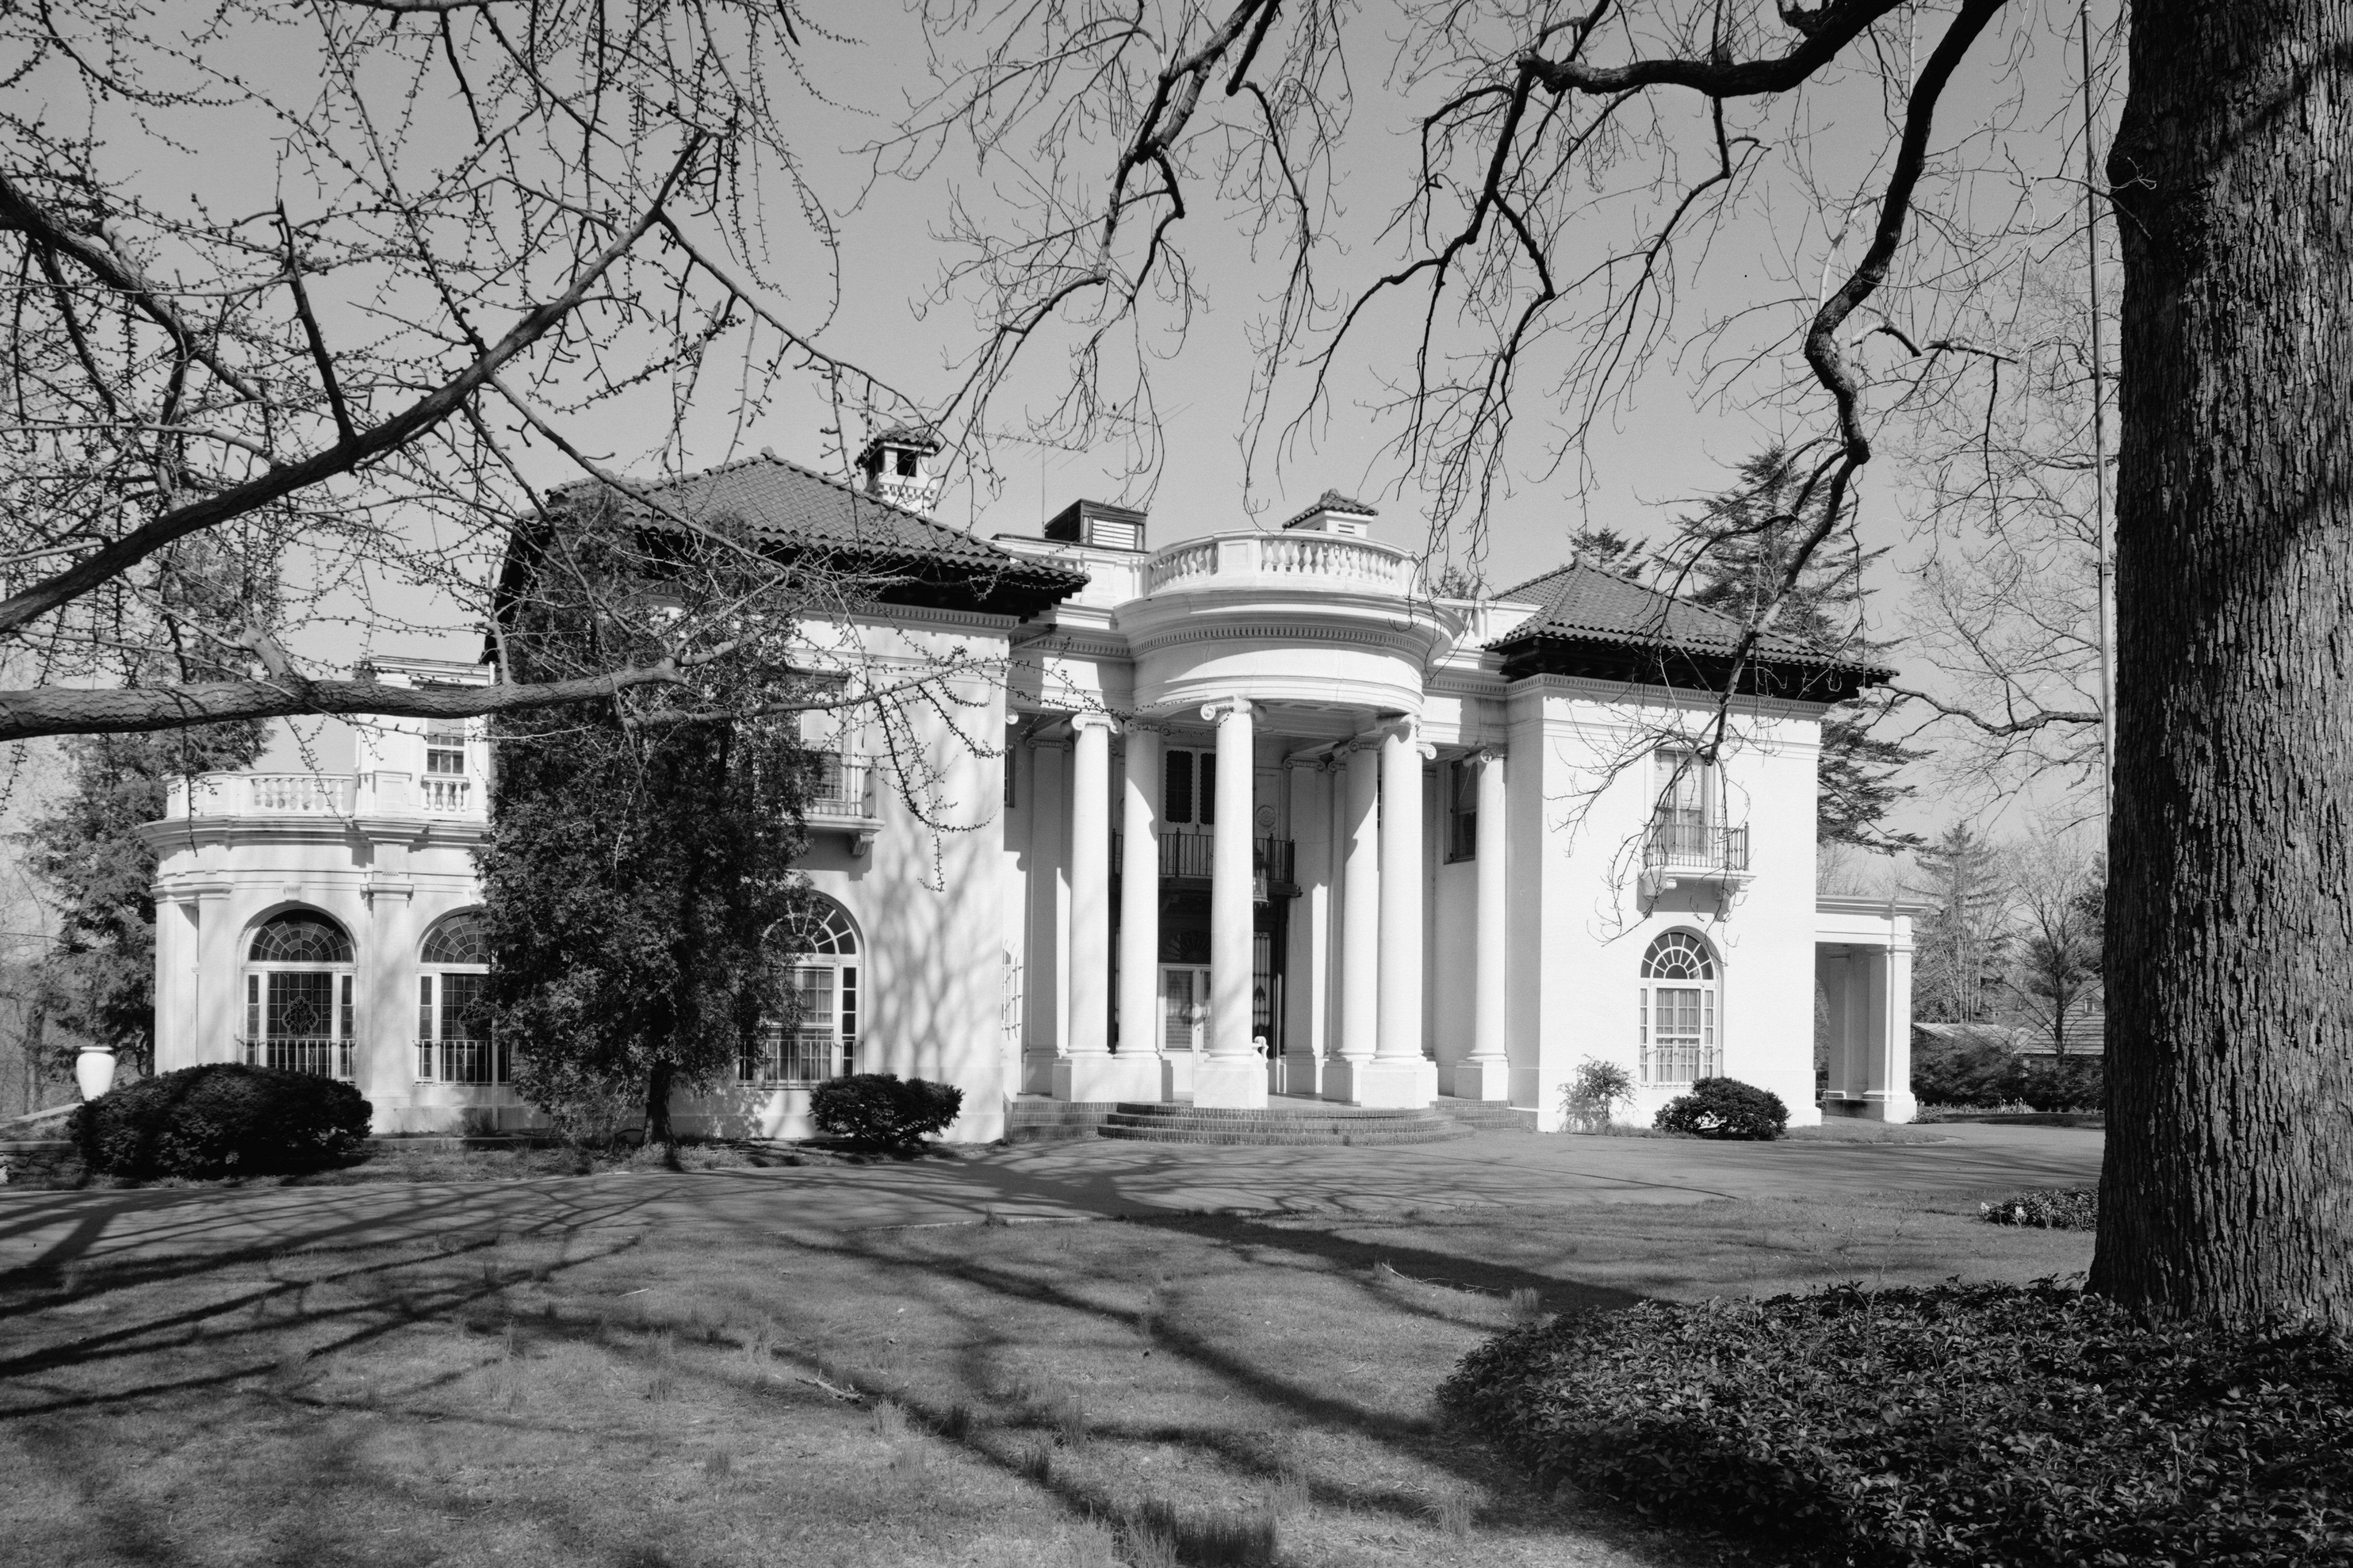 black and white photo of mansion with columns